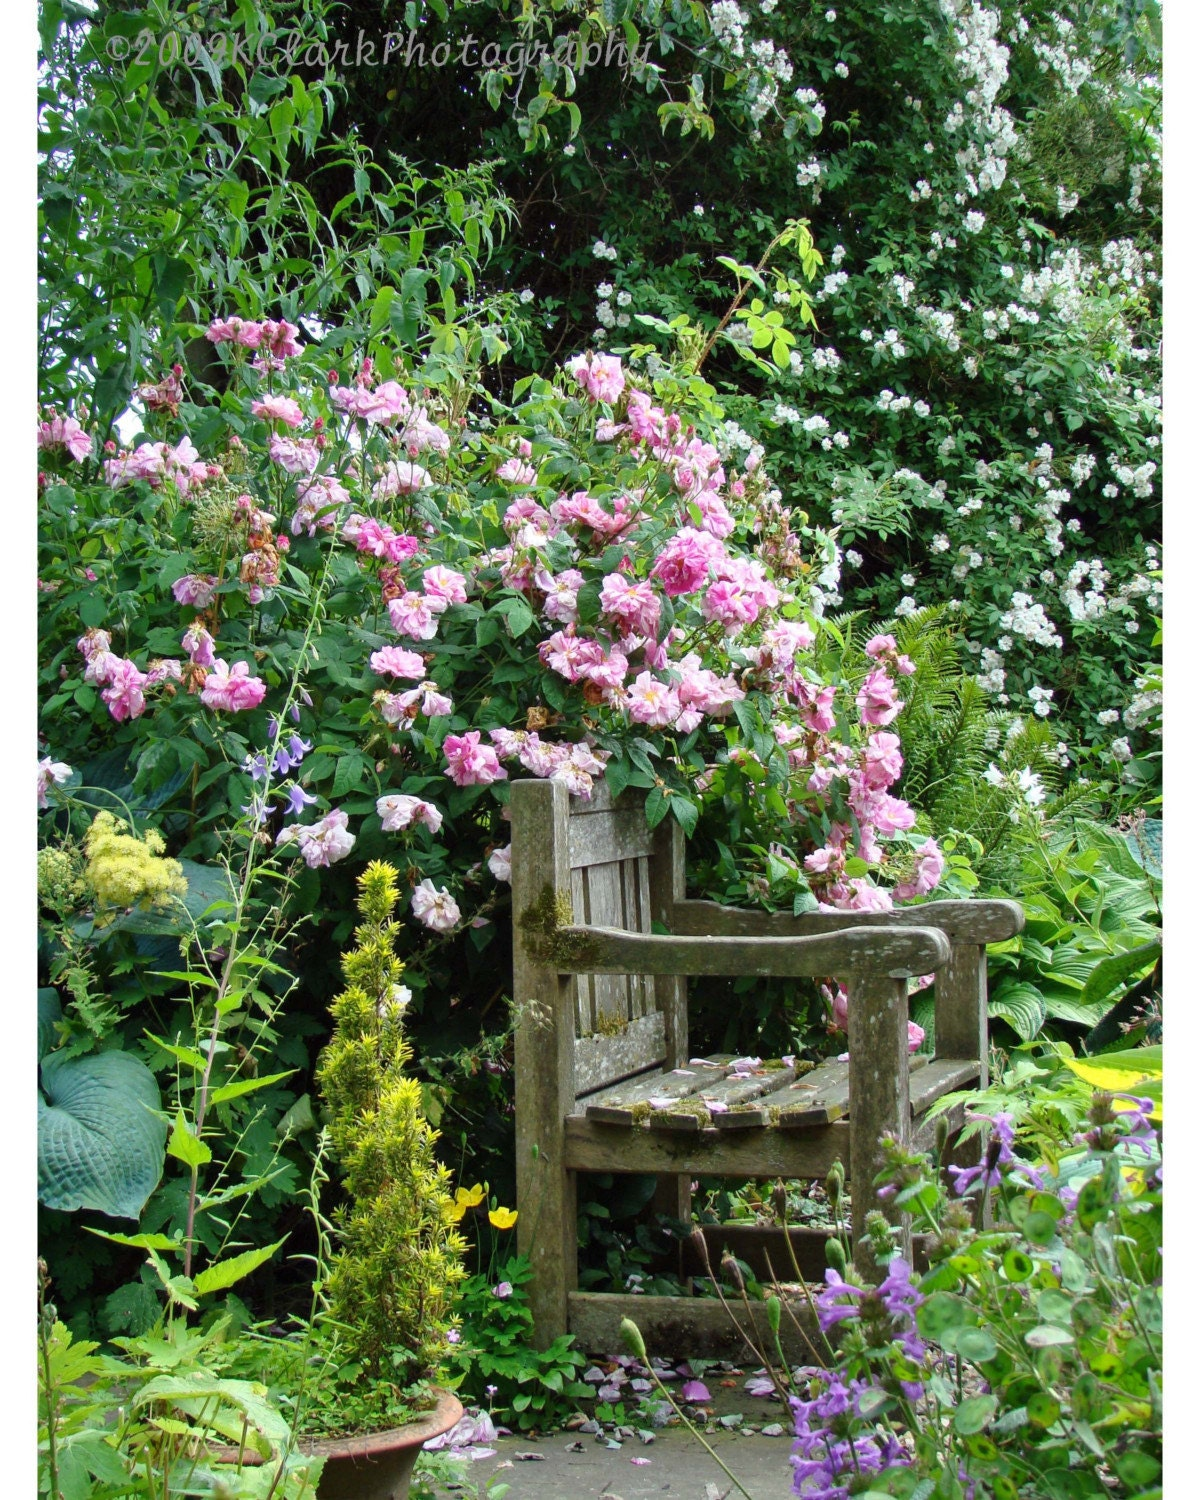 A Secret Garden 8x10 Photo 11x14 mat cottage english growing green nature roses flowers garden seat relax hidden decor - KClarkPhotography